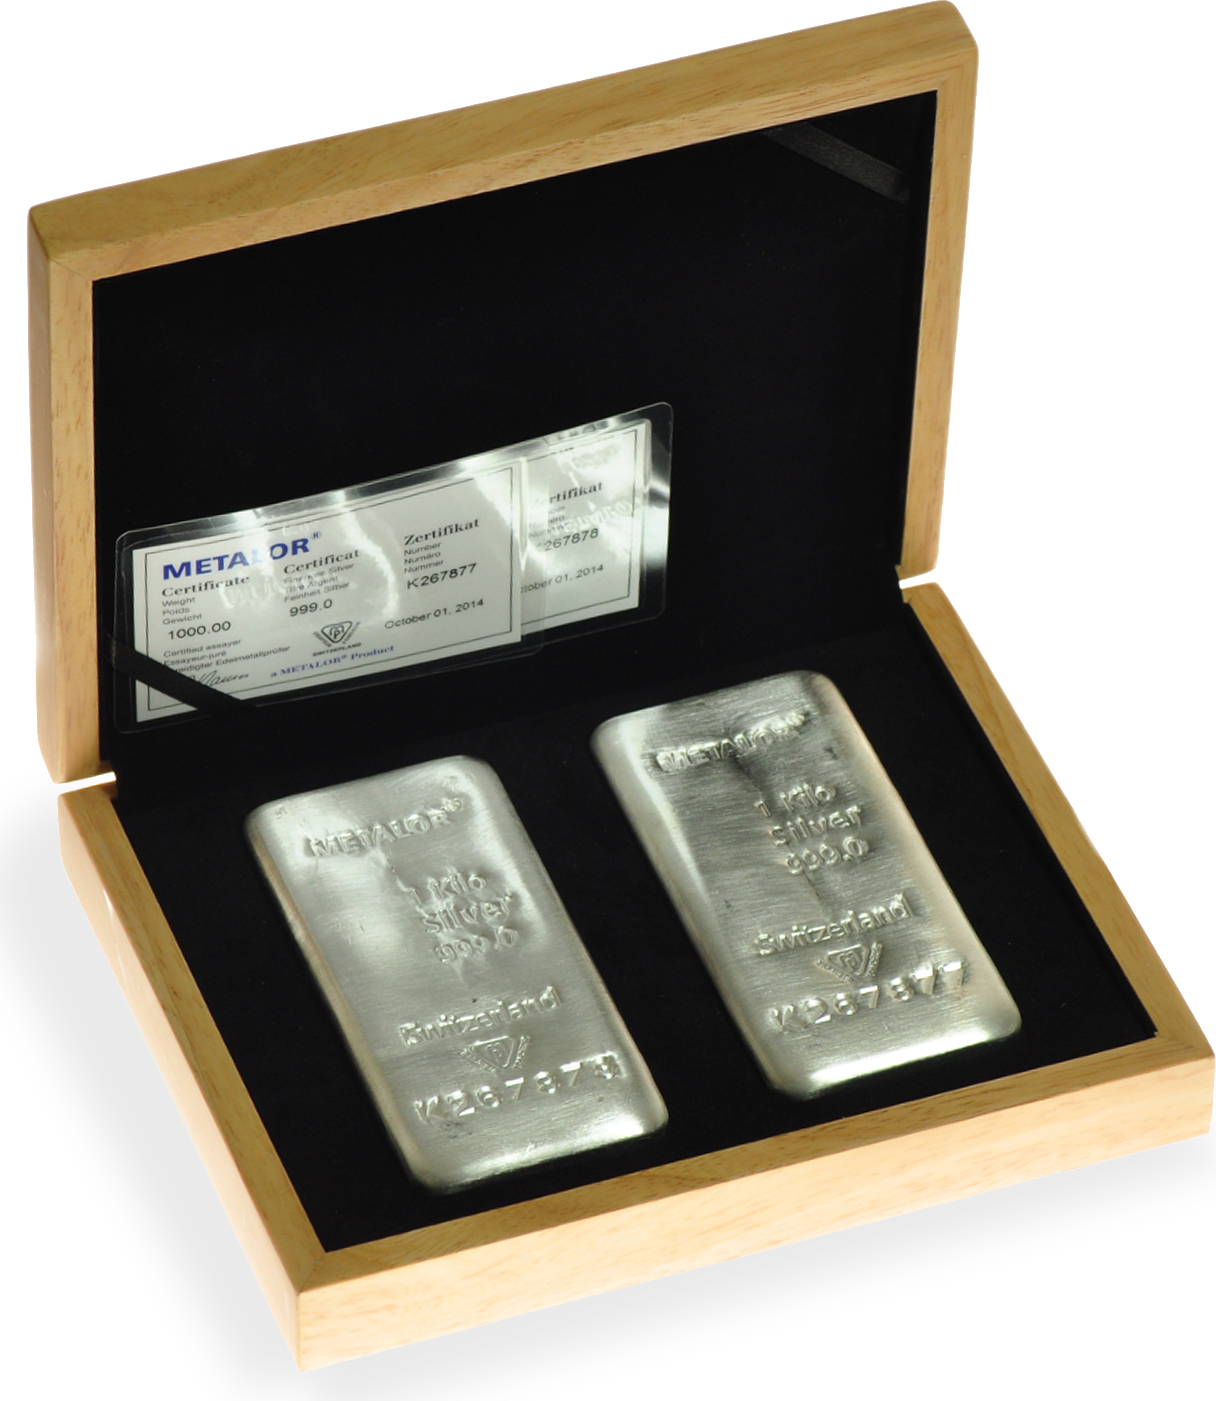 2 X Metalor 1 Kilo Silver Bullion Bar In Gift Box 163 1 109